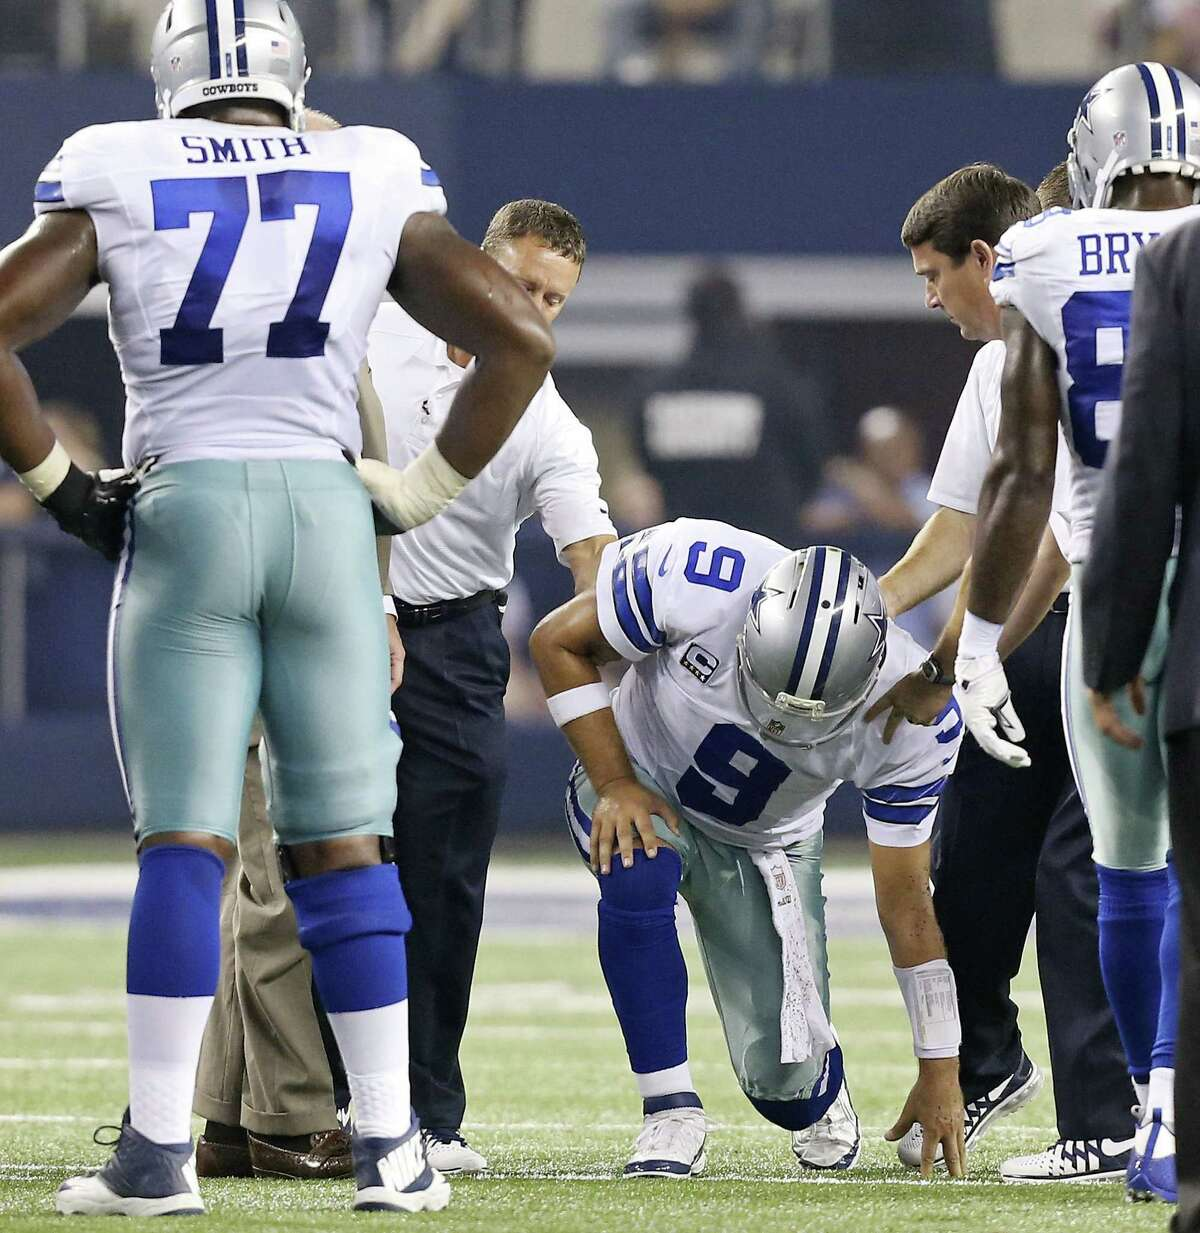 Cowboys QB Tony Romo is helped to his feet by team trainers after being sandwiched by Giants pass rushers Mathias Kiwanuka and Justin Trattou on Sunday night. X-rays of Romo's rib area on Monday revealed no structural damage.